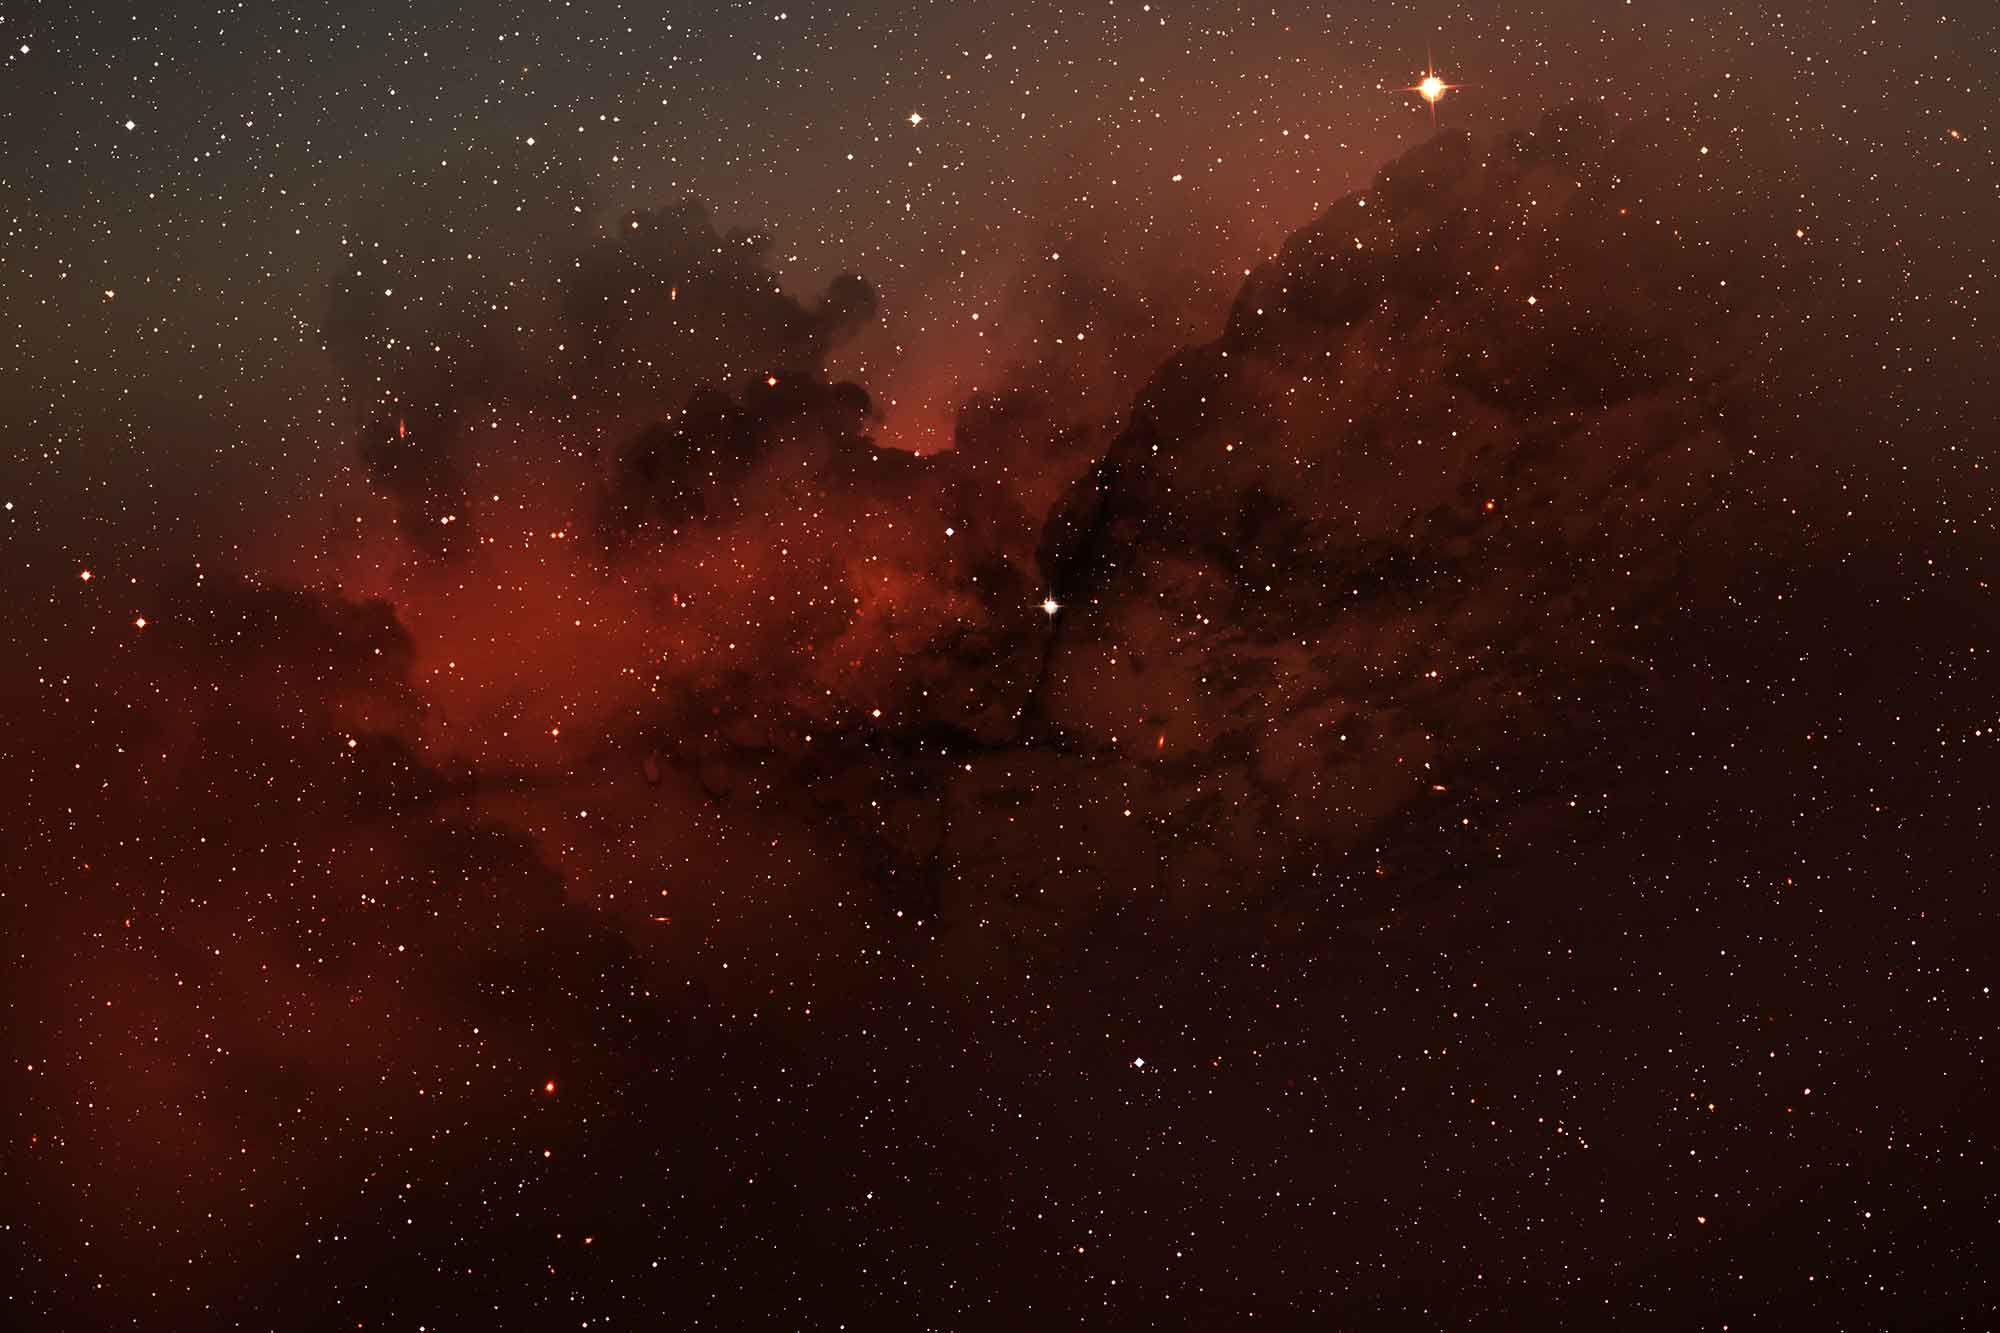 Space Background Image 7